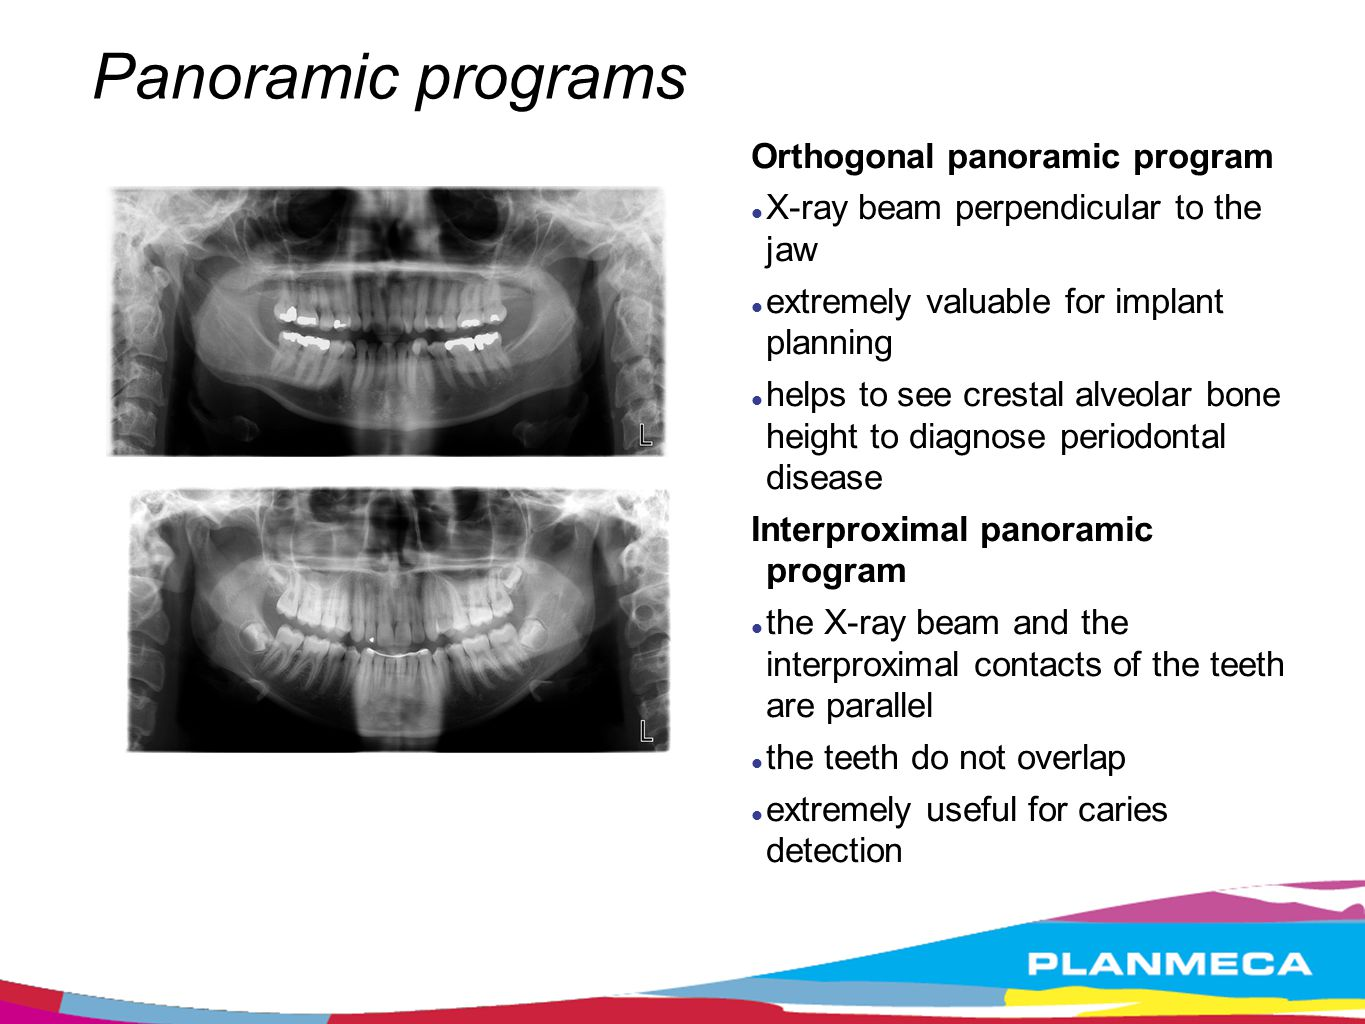 Interproximal program standard panoramicinterproximal panoramic Normal panoramic geometry teeth are overlapping Geometry improved according to the teeth interproximal angulation no overlapping